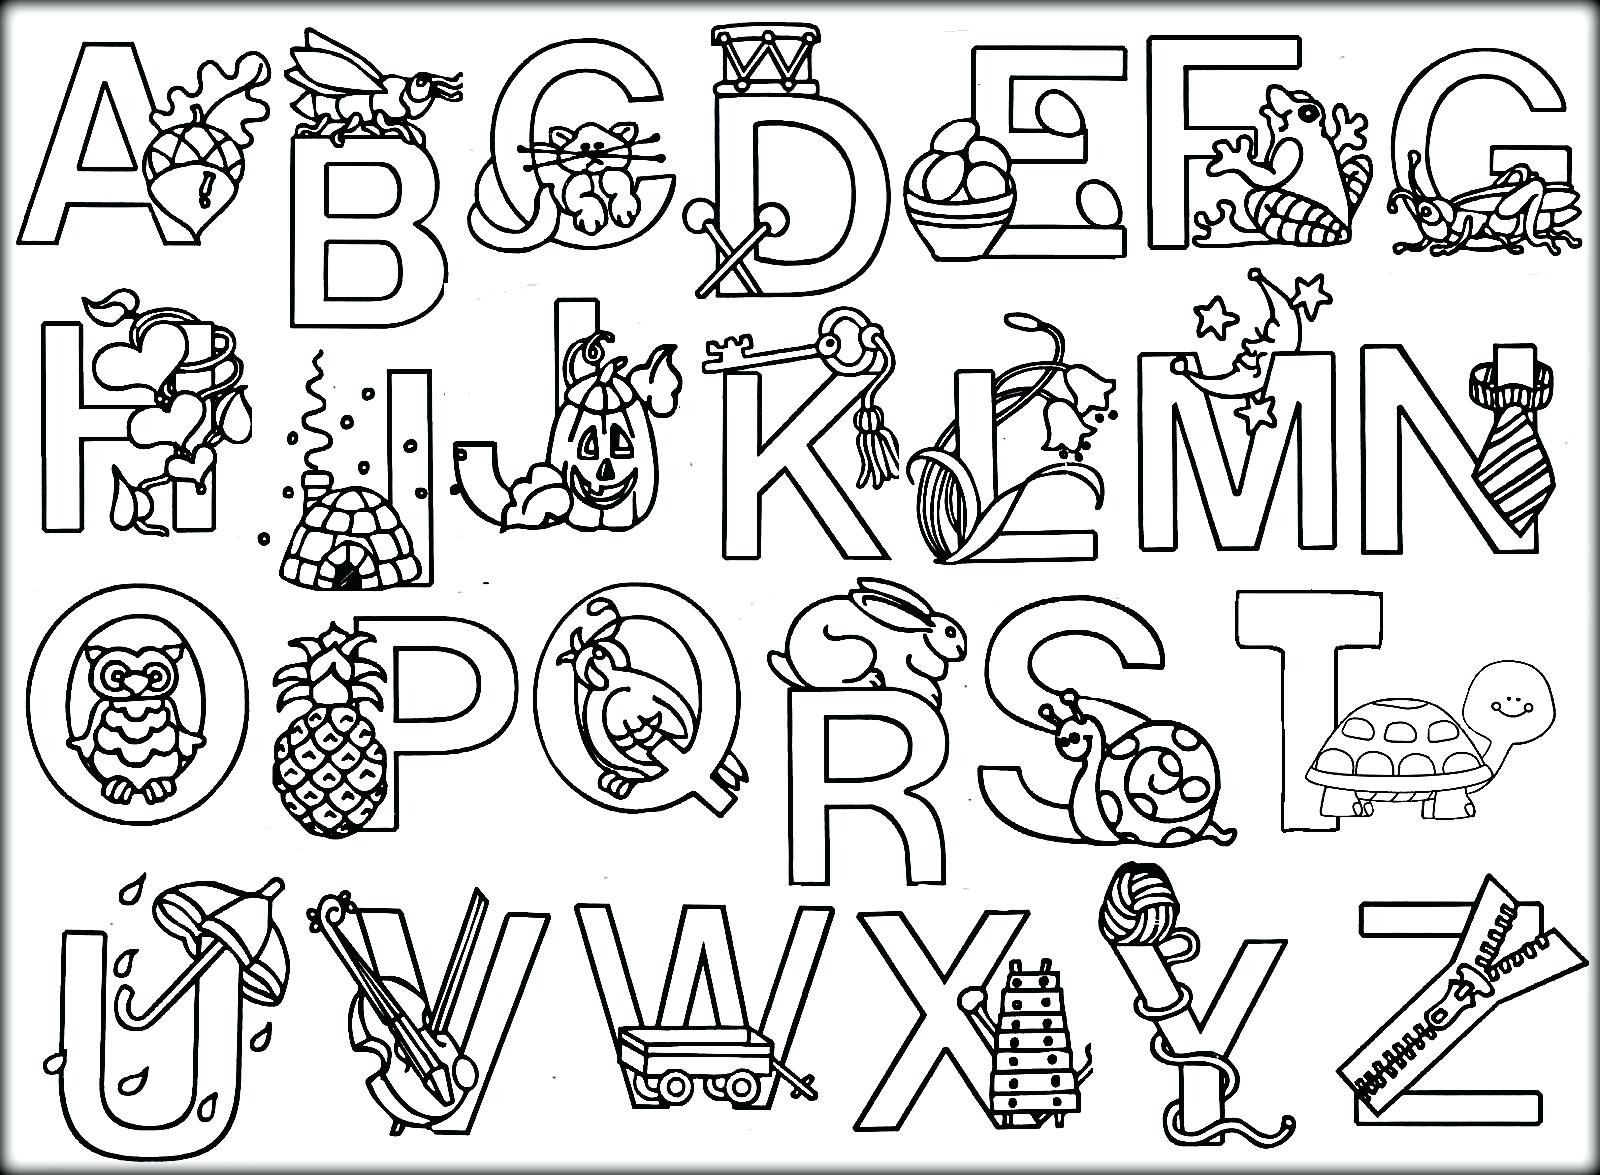 Alphabet Adult Coloring Pages At Getdrawings